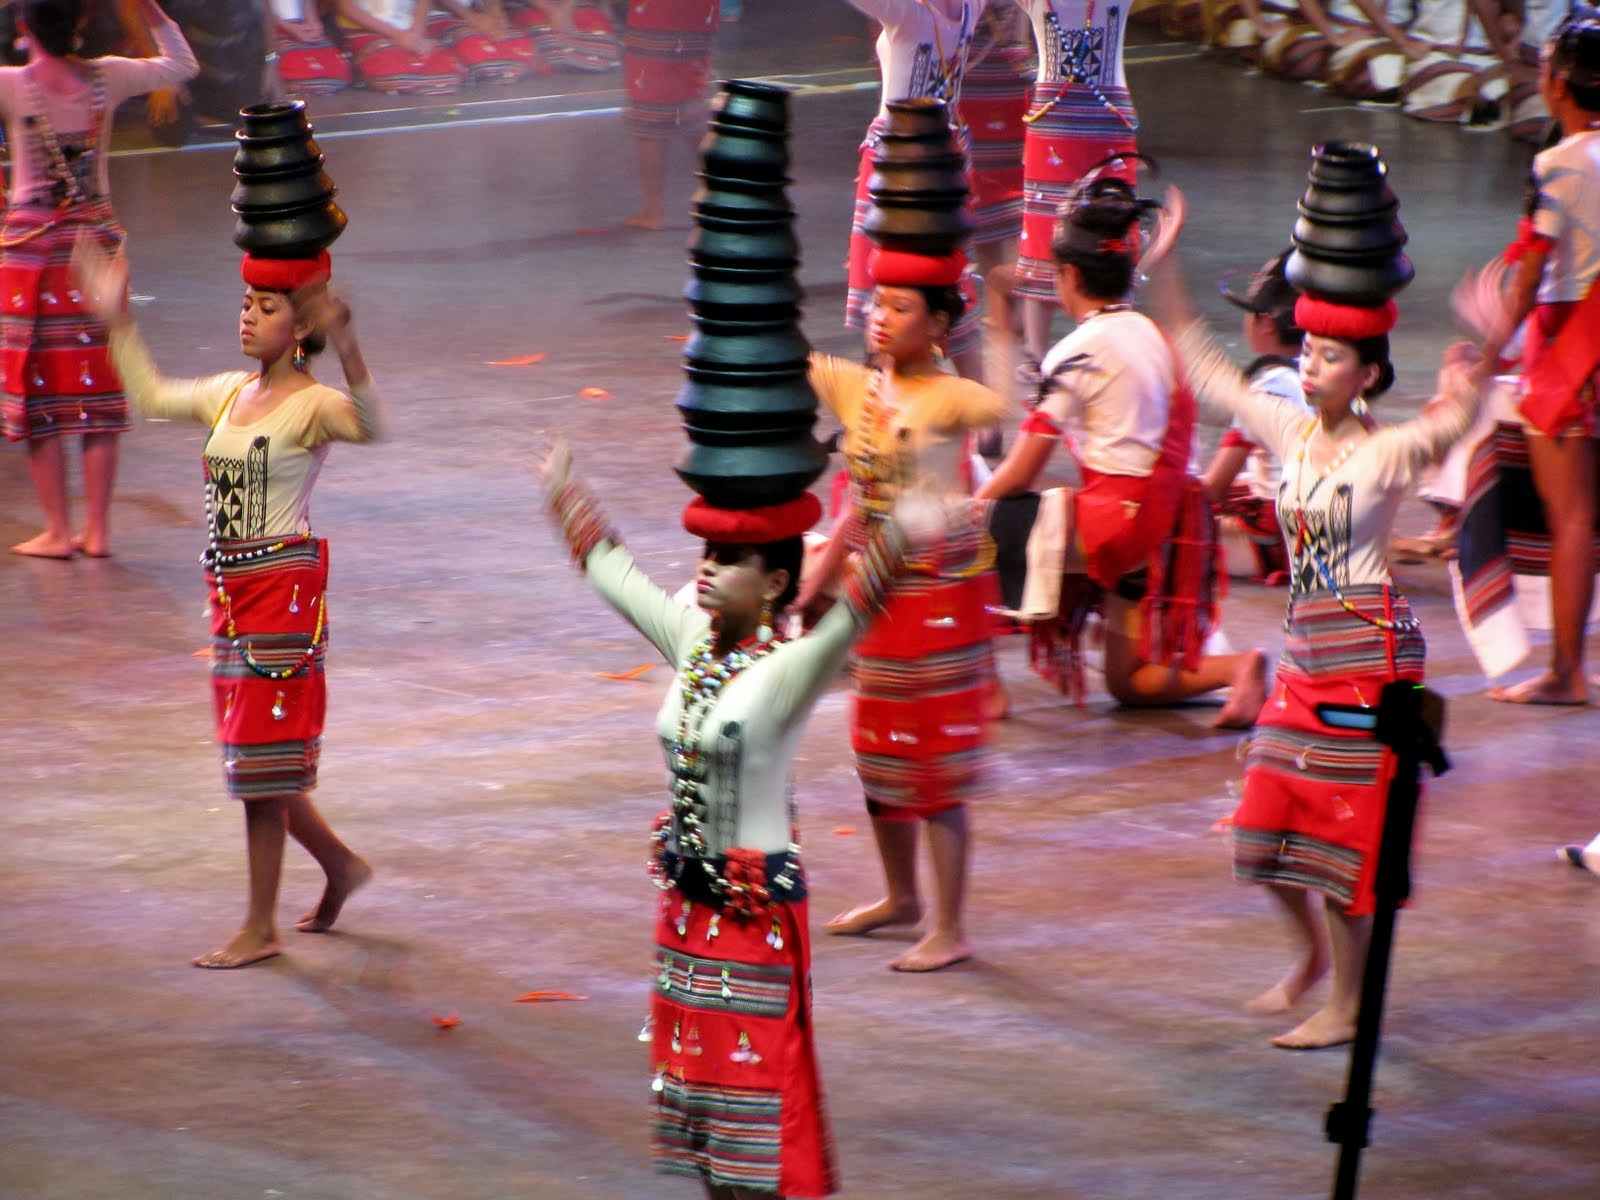 dances of luzon Tribes in the mountain provinces of luzon preserve their identity, customs and lore their dances celebrate important events in life such as birth, wedding, victory in war and thanksgiving.